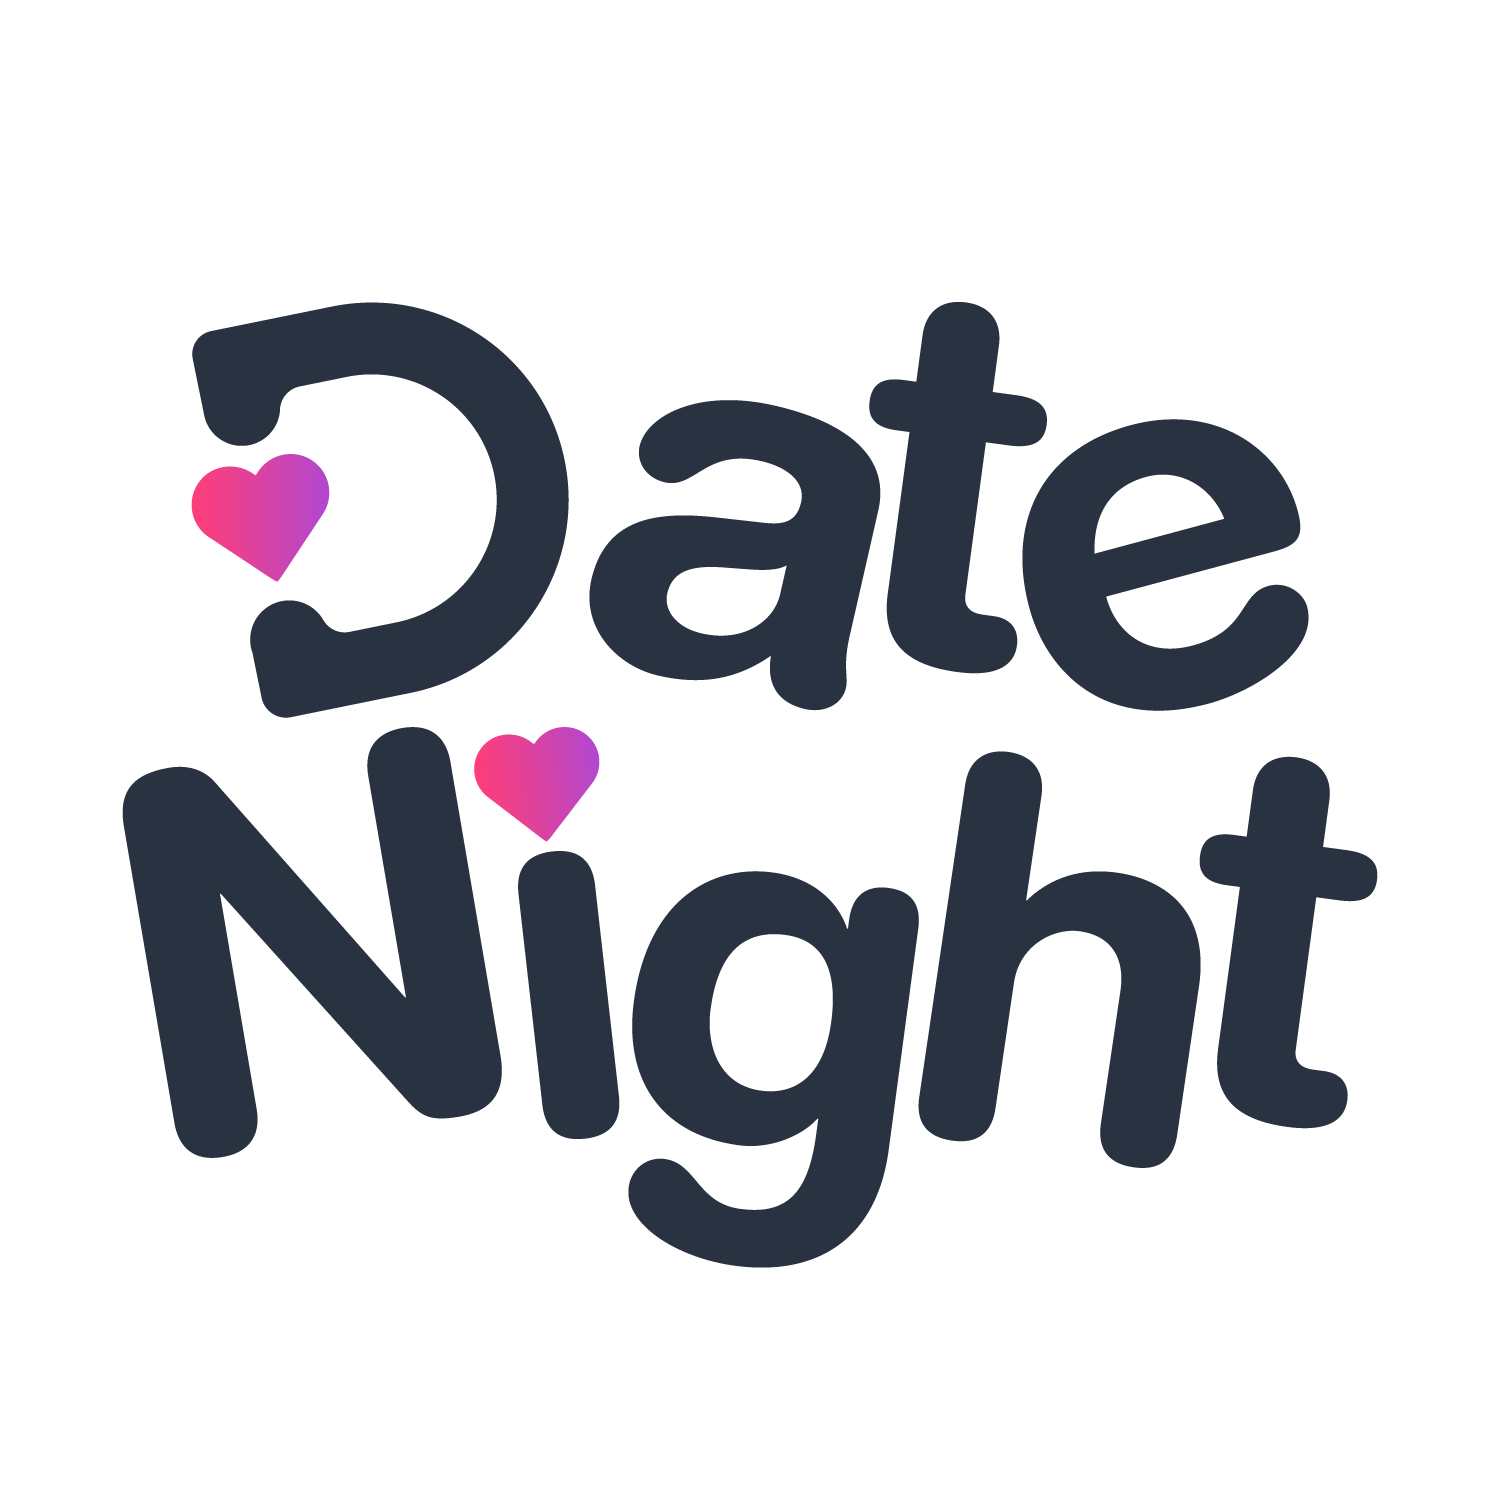 date_night_text_logo